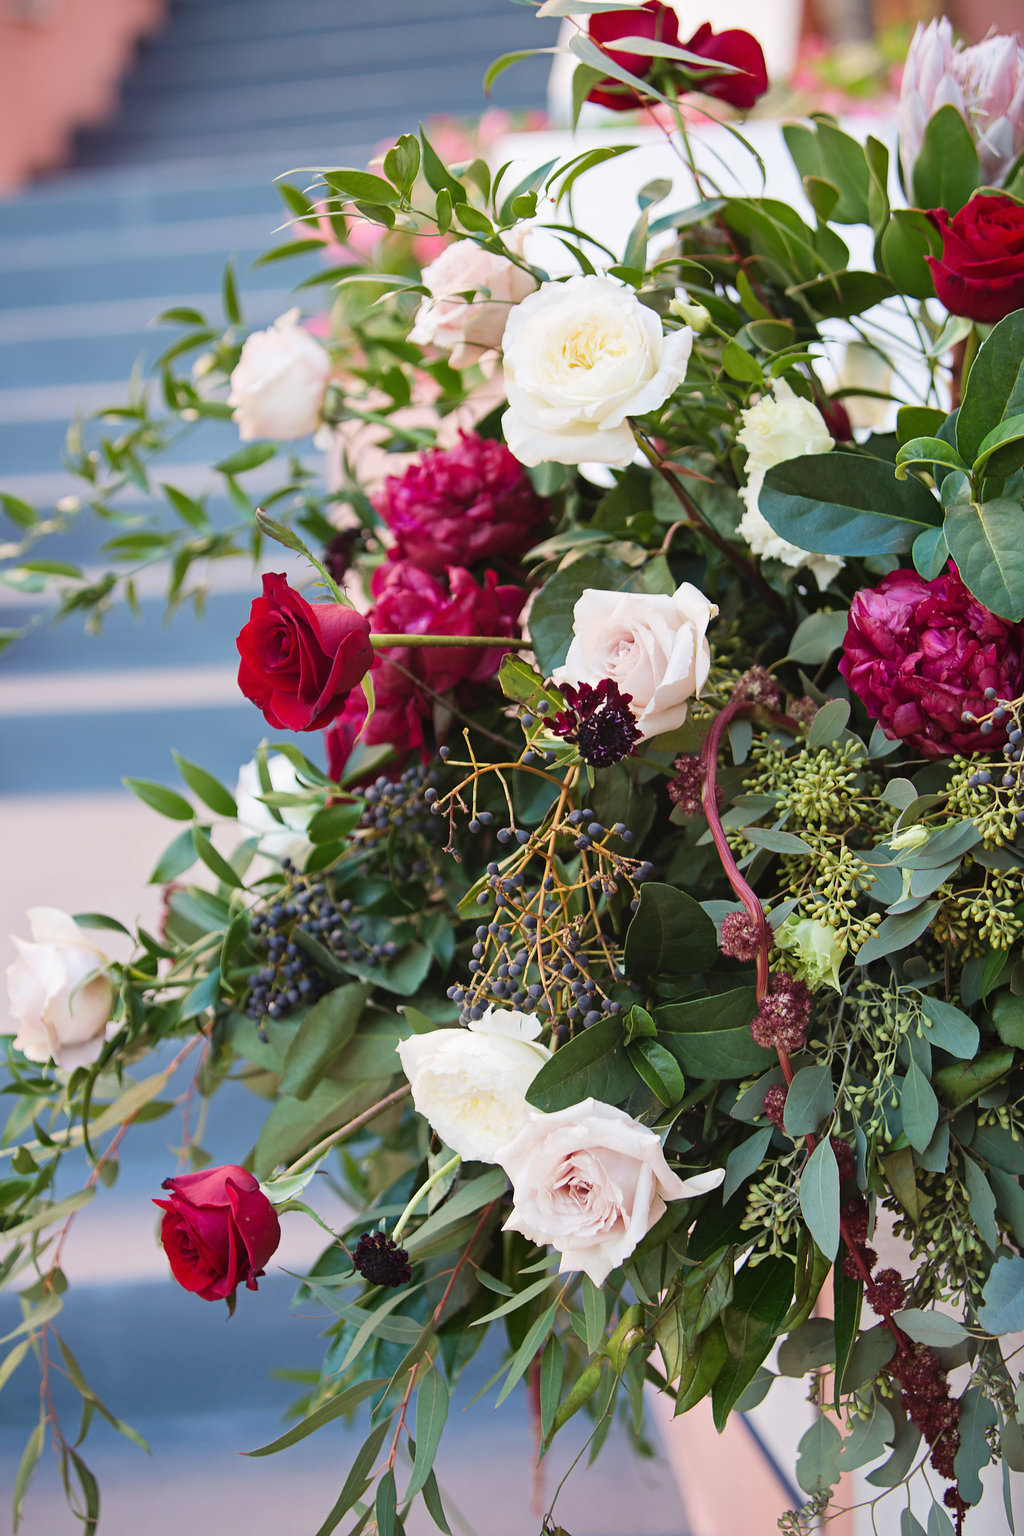 Outdoor Wedding Flower Arrangement with White and Red Roses with Greenery